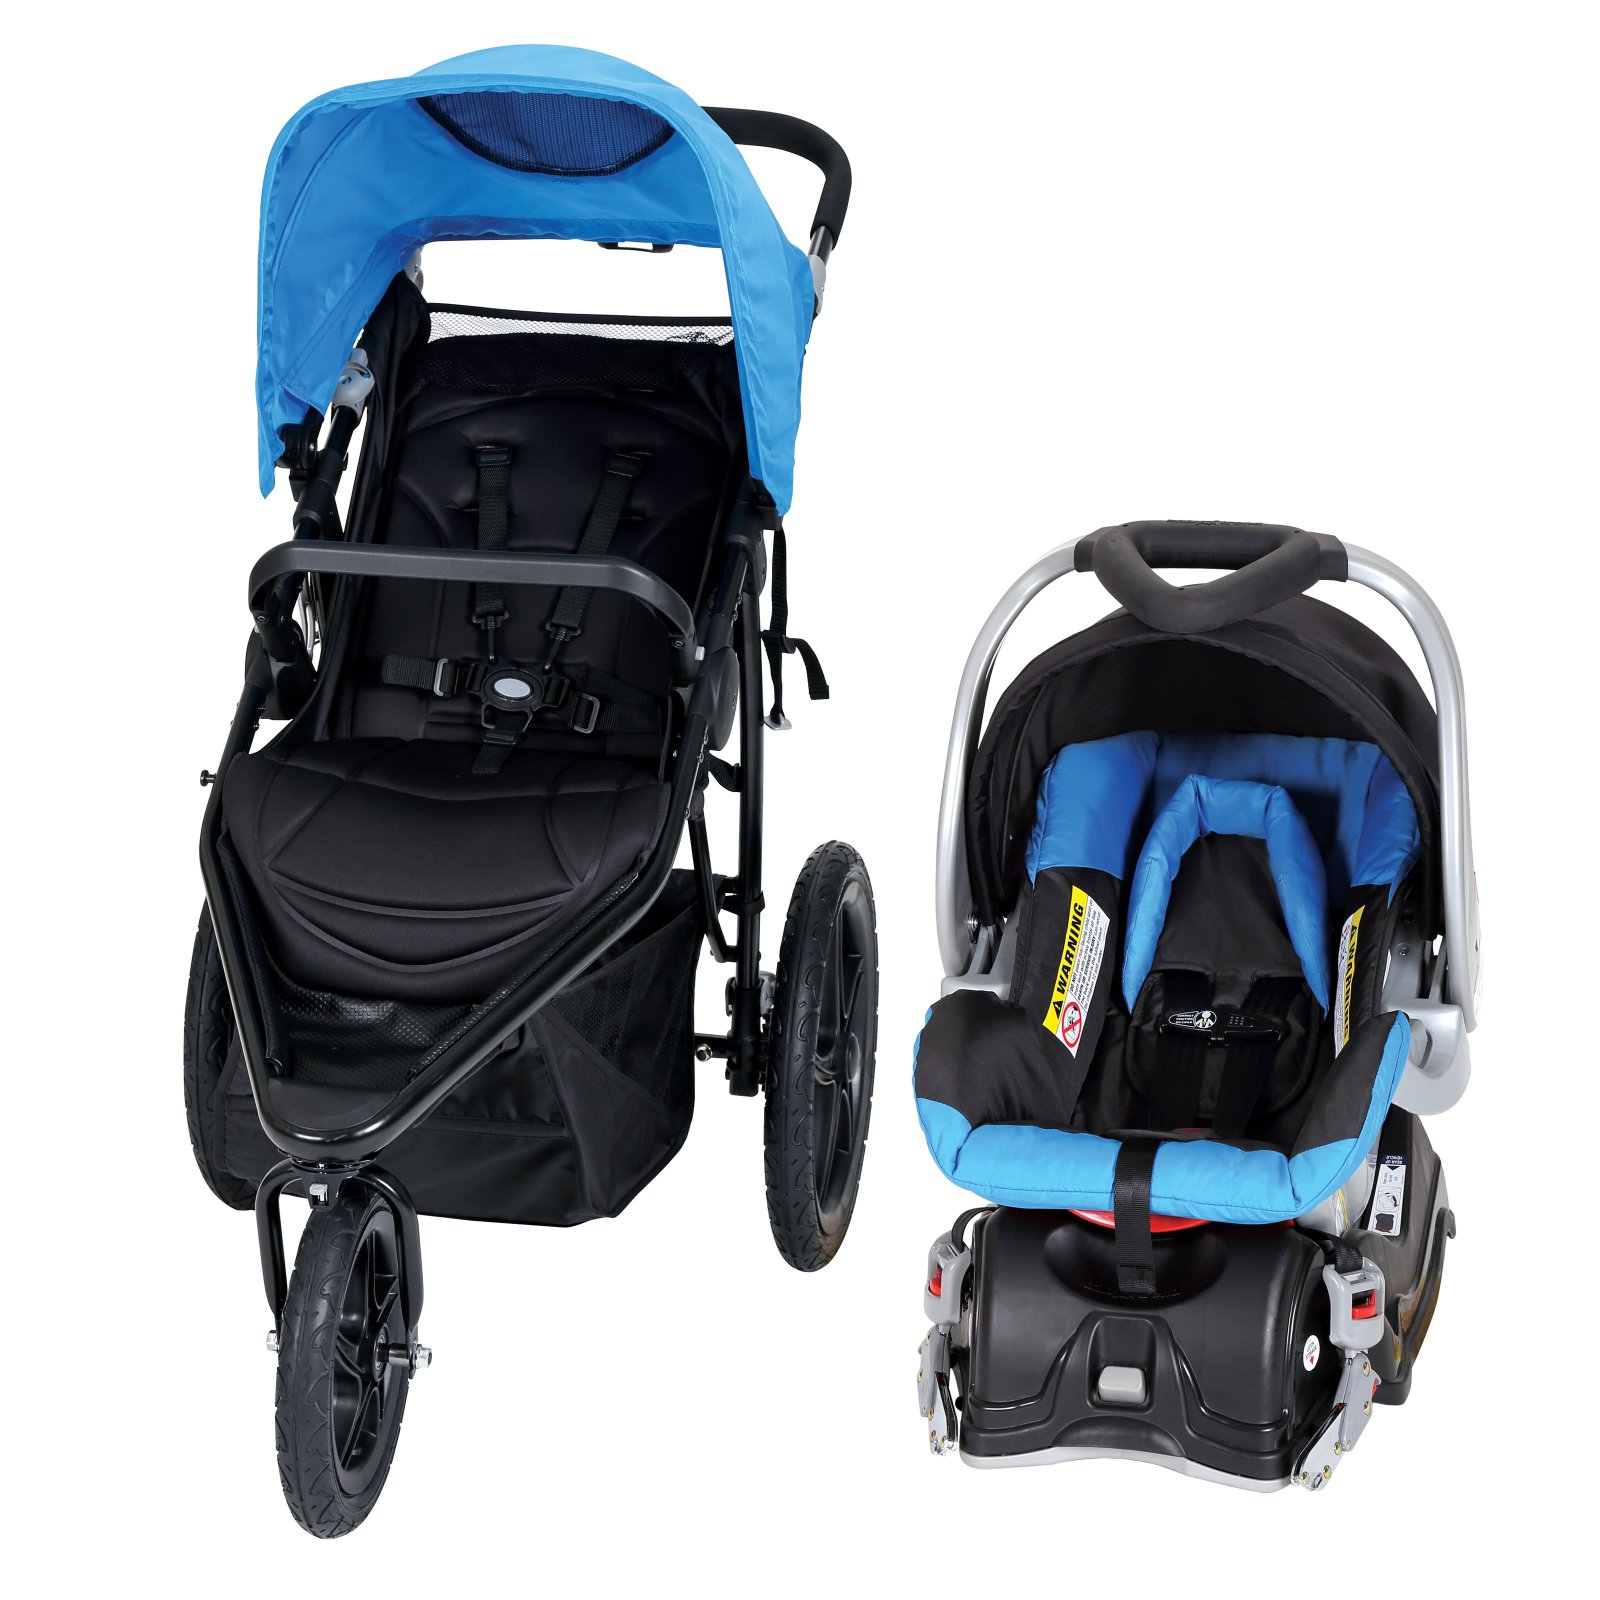 Baby Trend Stealth Jogger Travel System, Seaport